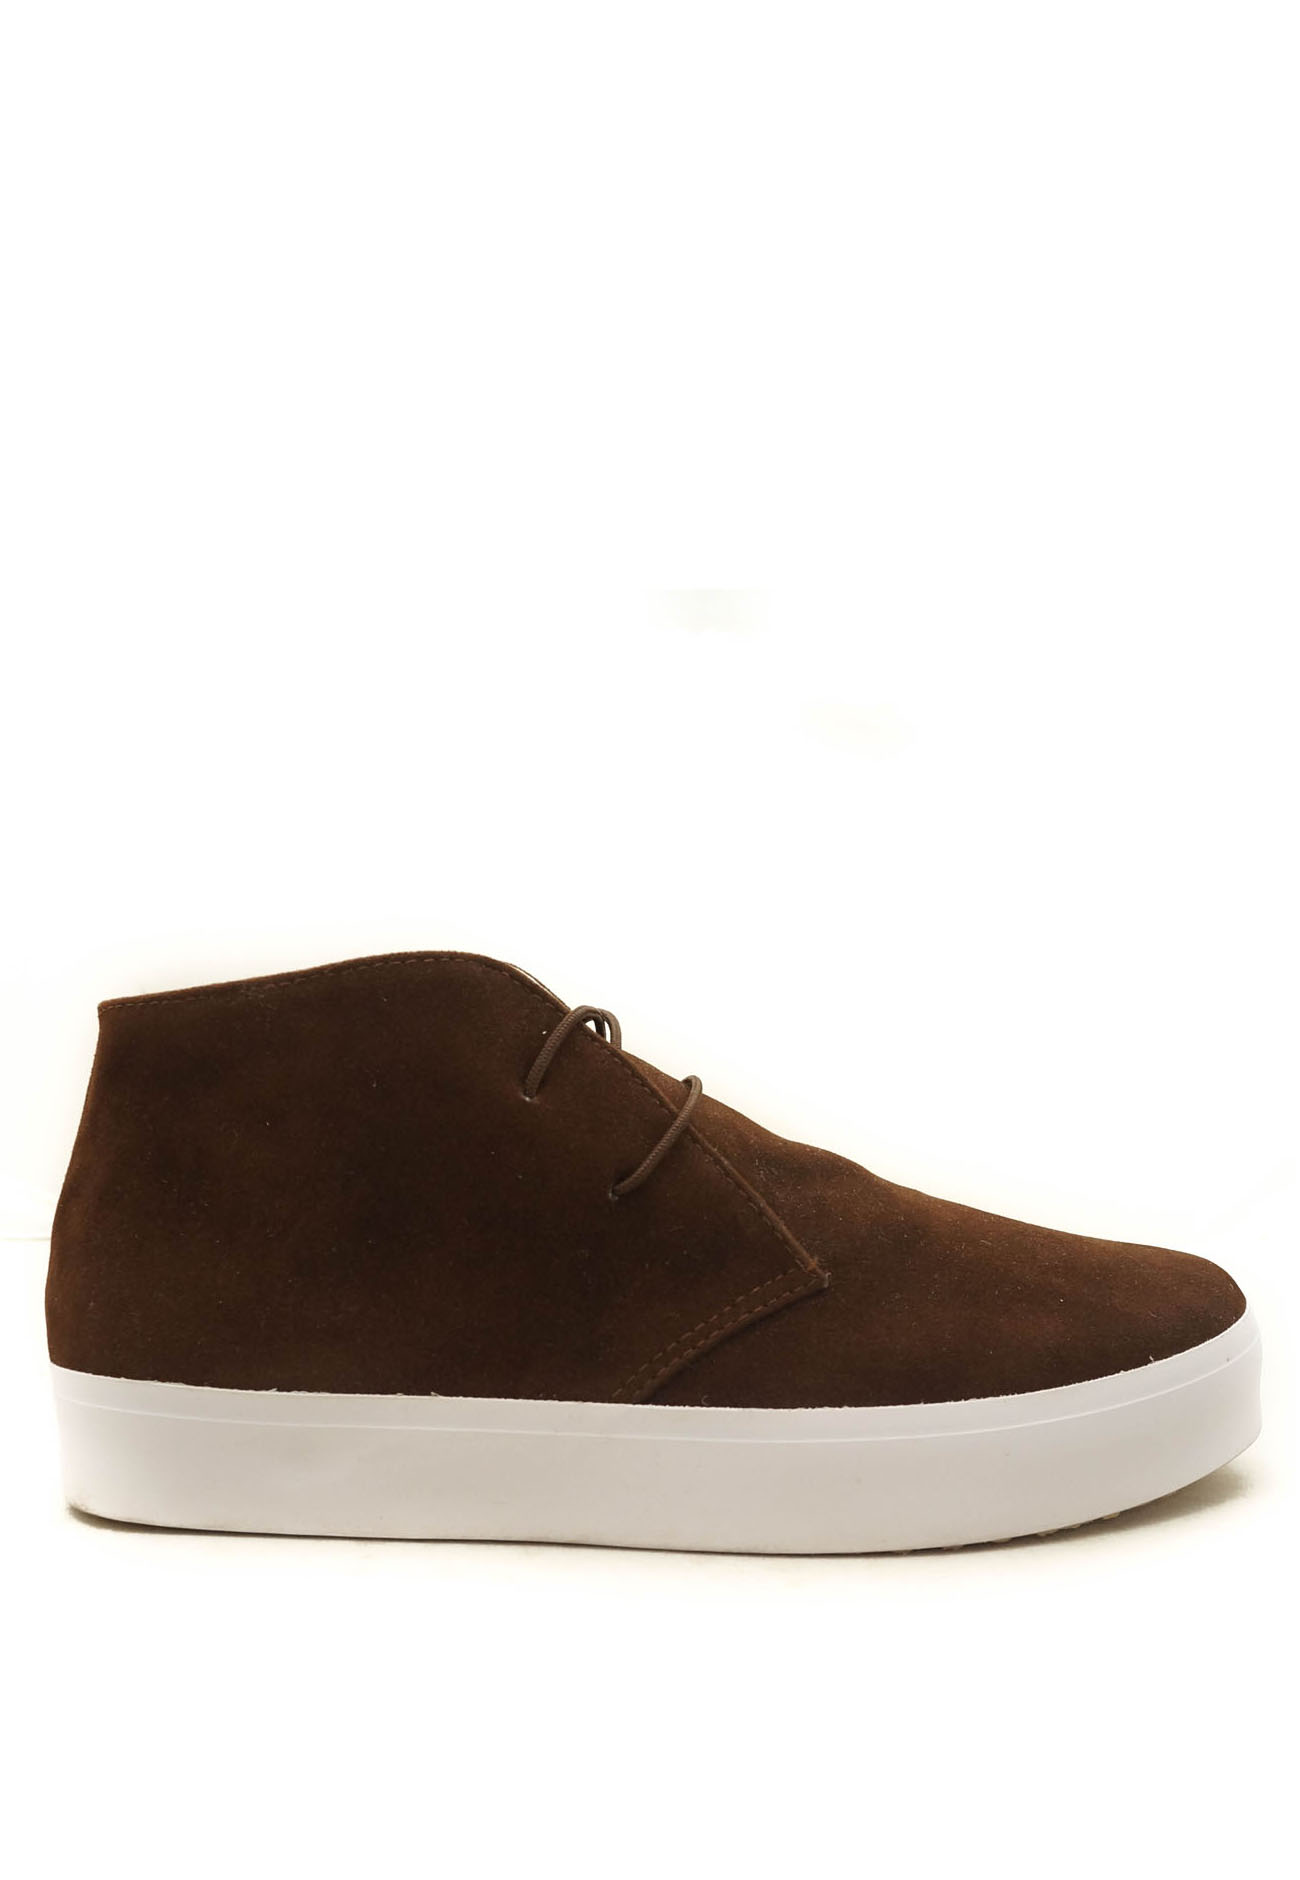 CDE CDE Lucid Chukka Women Sneaker Dark brown